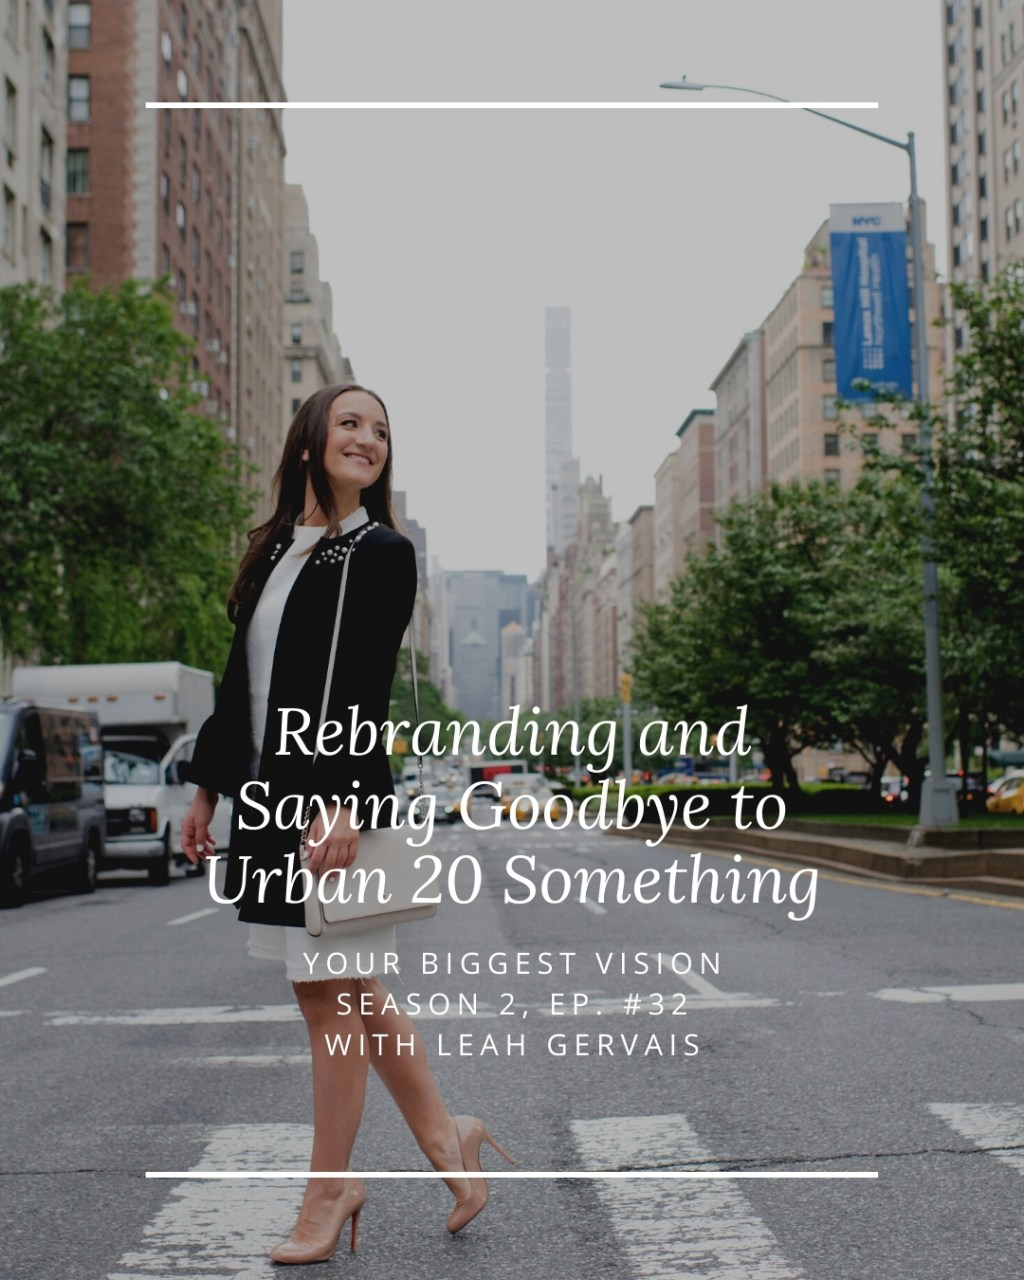 Goodbye Urban 20 Something, hello LeahGervais.com. Learn the true identity and mission of my current business and how our new brand allows us to share that.